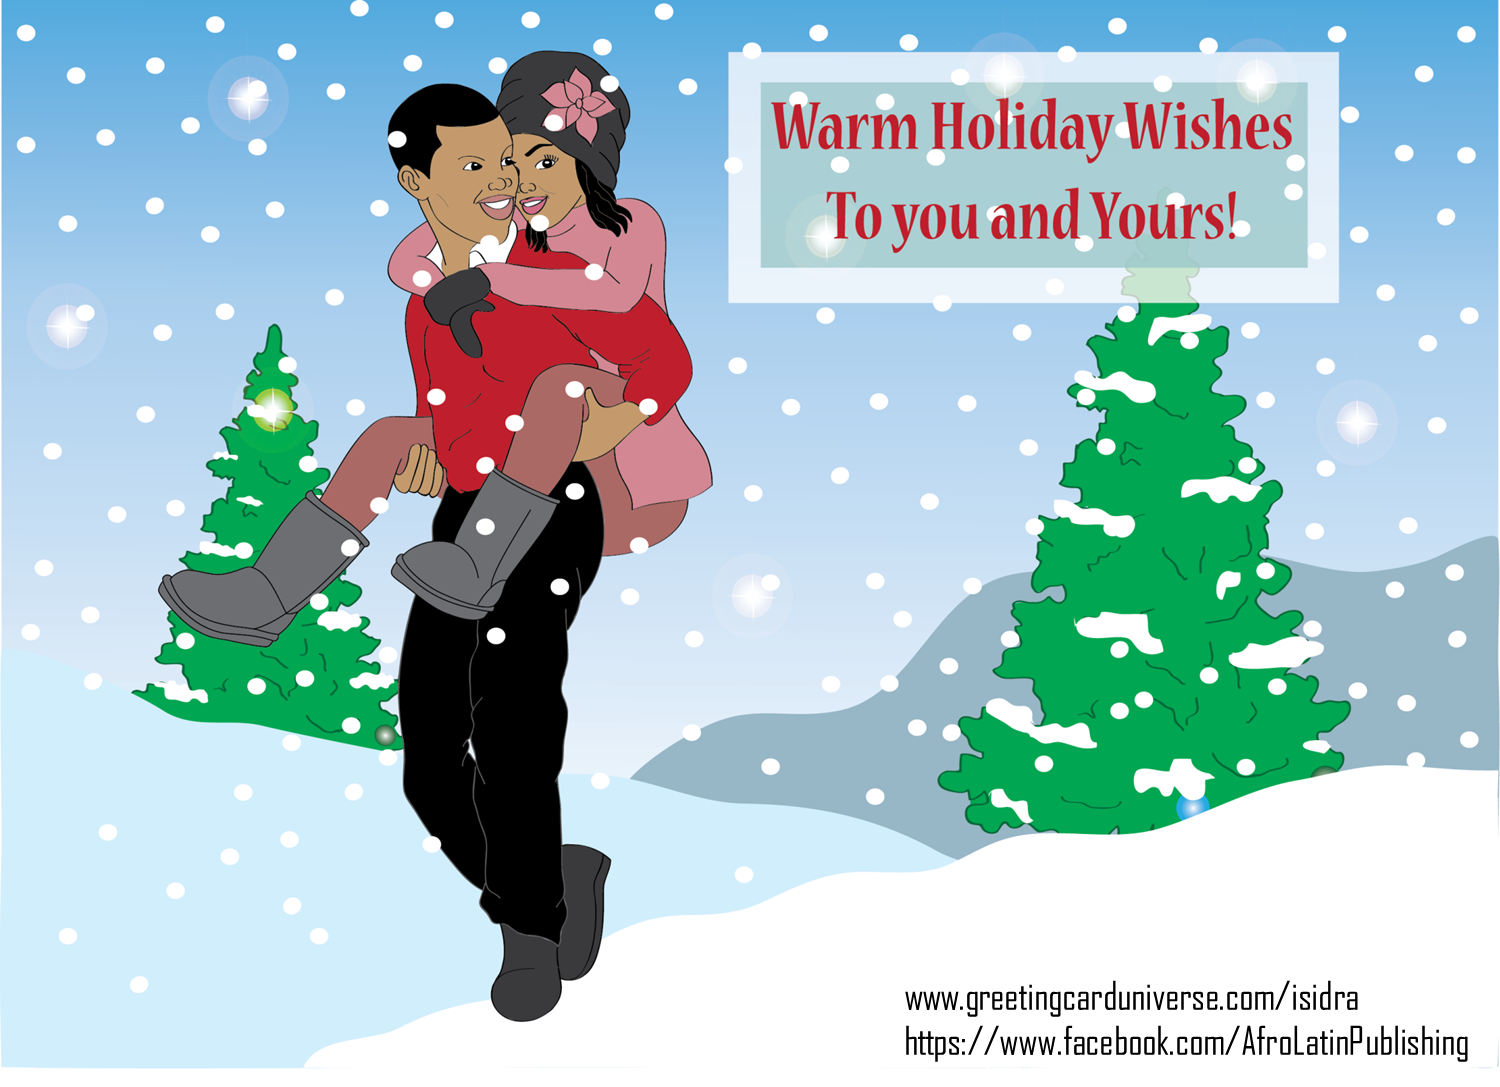 Christmas card couple in the snow warm holiday wishes black christmas card couple in the snow warm holiday wishes black couple holiday kristyandbryce Gallery